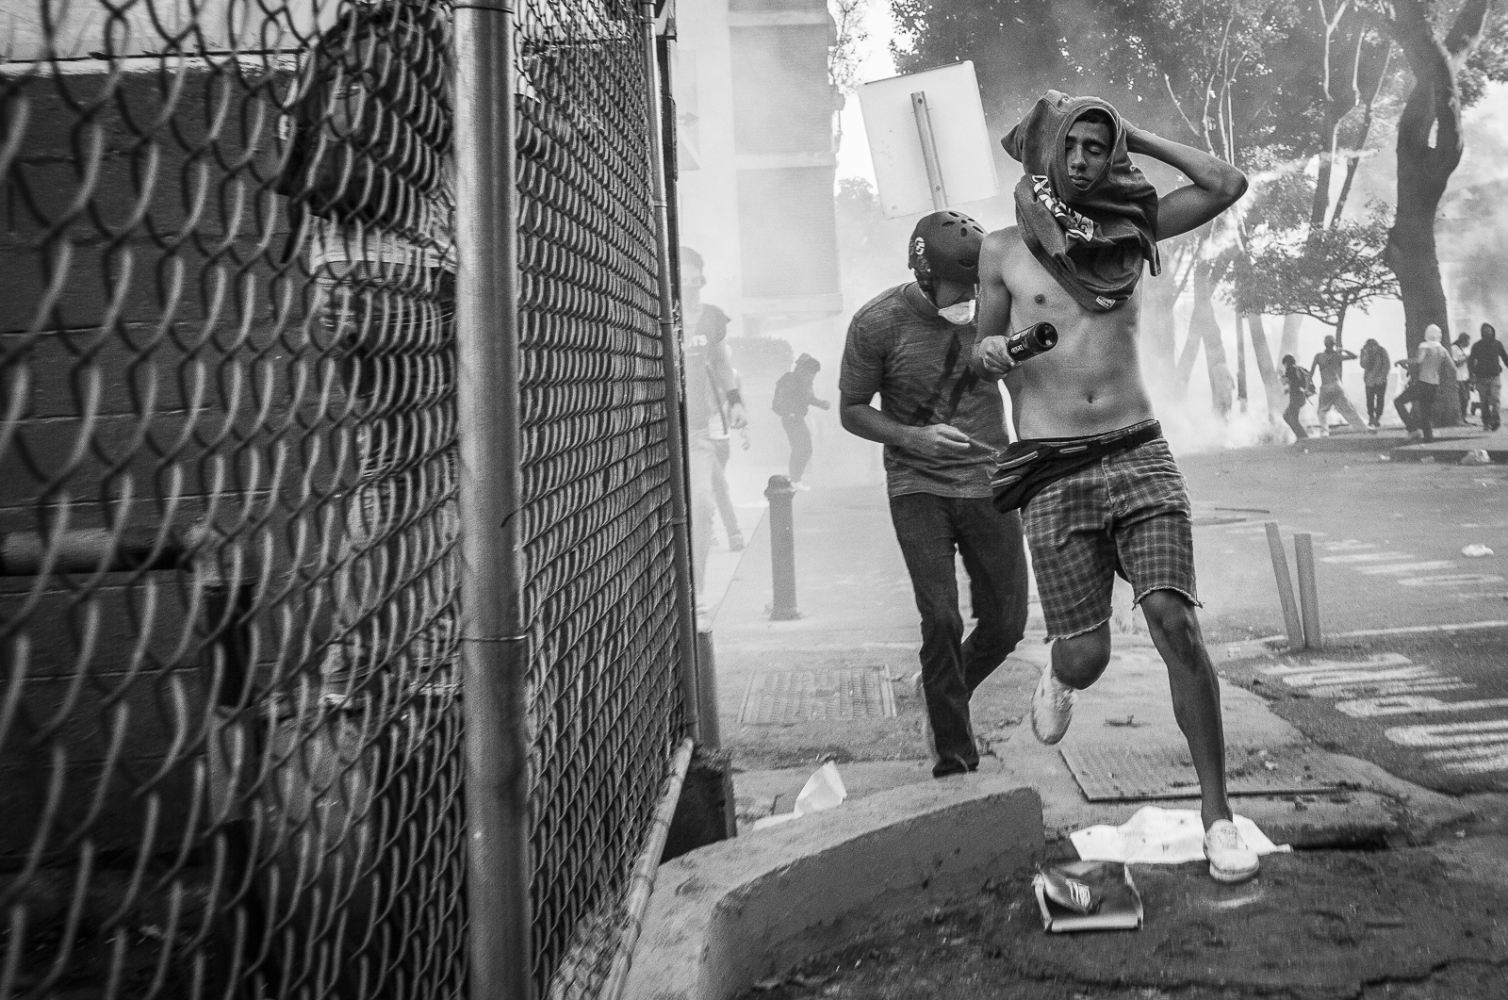 Demonstrators run away after being targeted with a tear gas during the protest on Avila Avenue in Altamira, Caracas.  Altamira has been the main area where students have been demonstrating on the last days in the Venezuelan capital against the Government of President Nicolas Maduro.